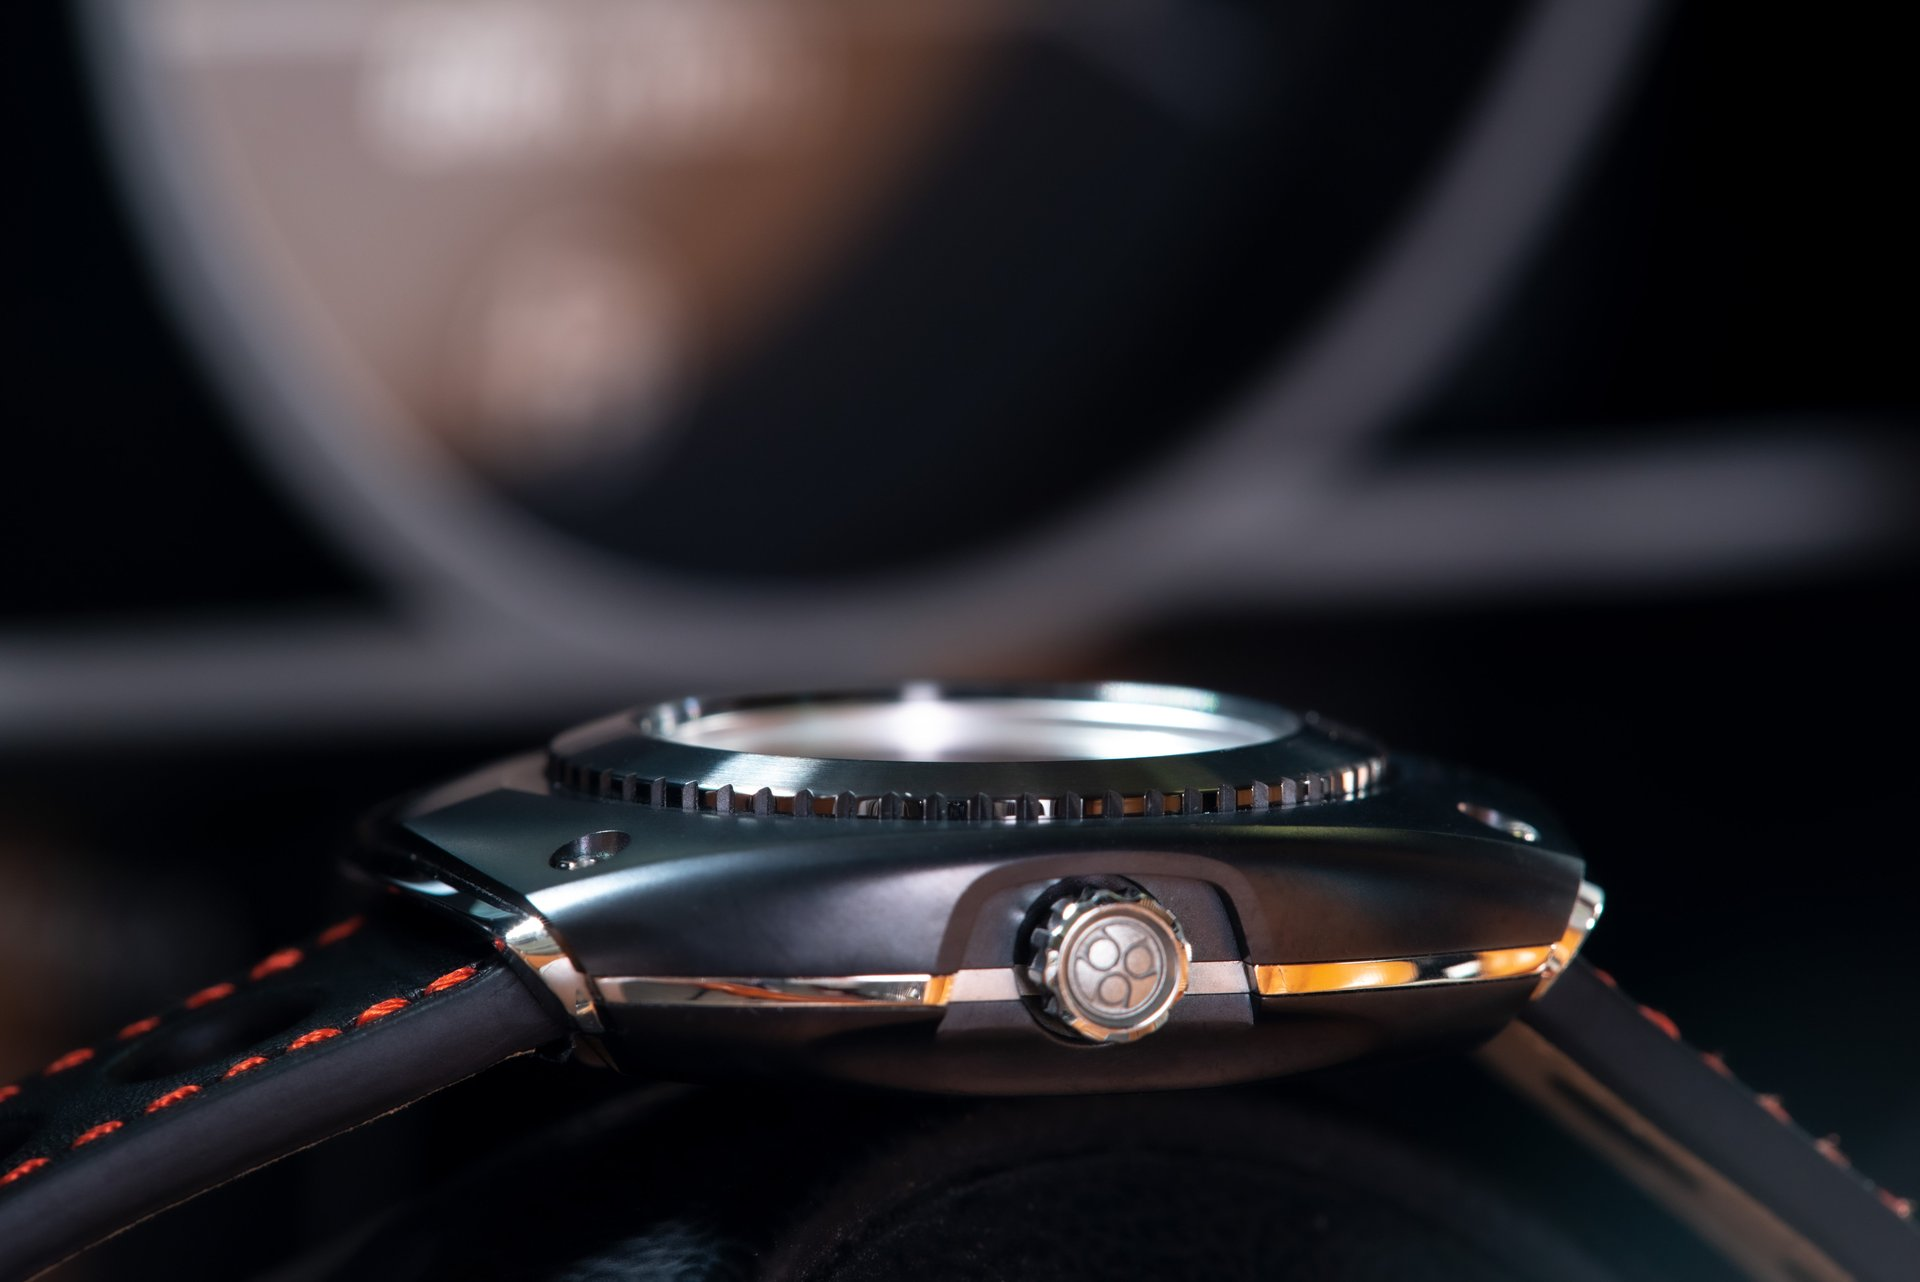 Blasta Watch Scuderia Veloce, silver arrow, side view. Photo taken on the front of a Alfa Romeo Montreal. ©2019 Blasta Watch Ltd. All Rights reserved.